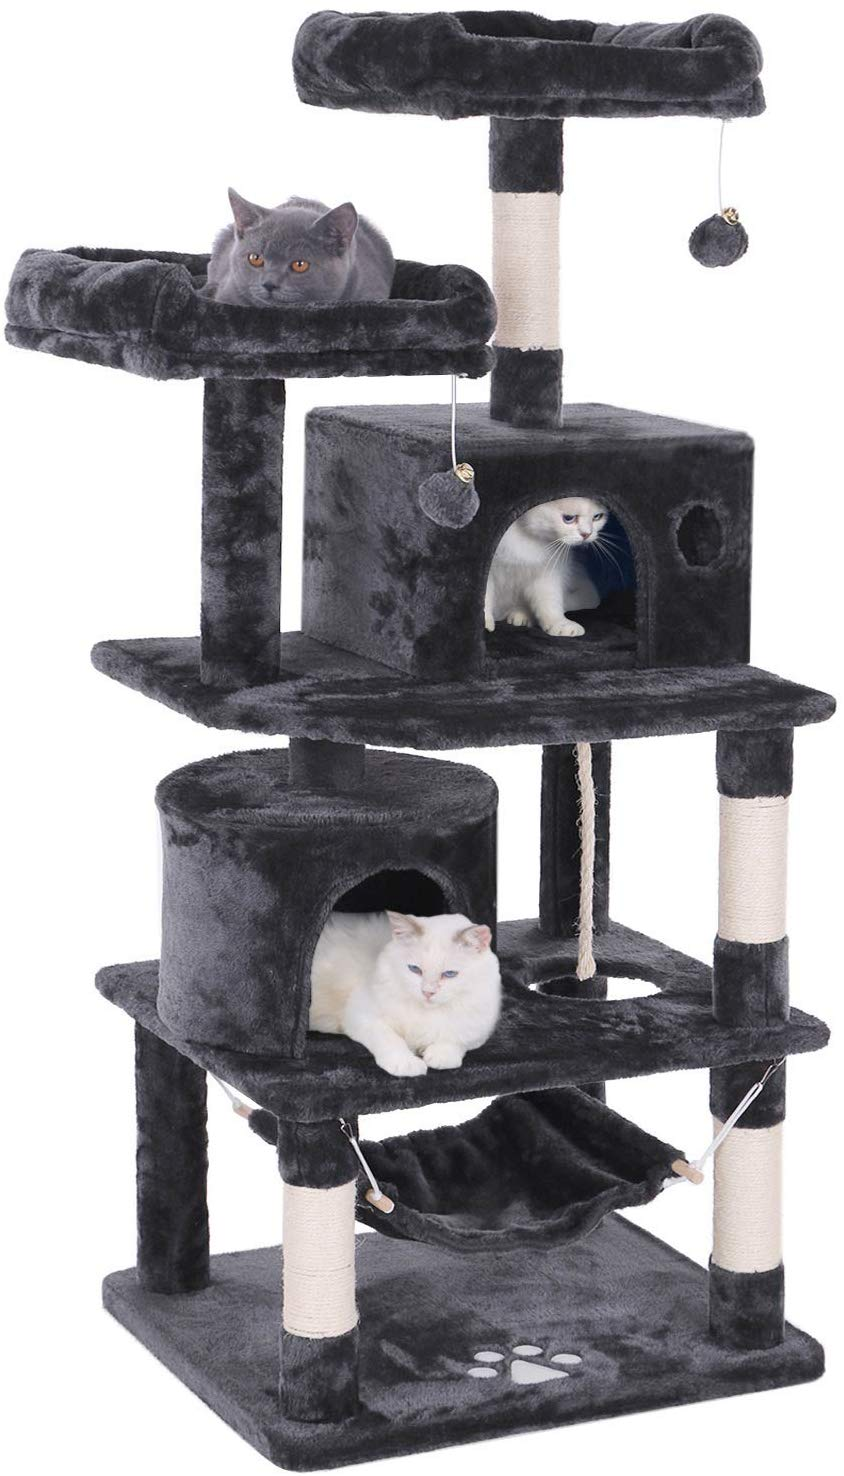 BEWISHOME Cat Tree Playhouse Condo